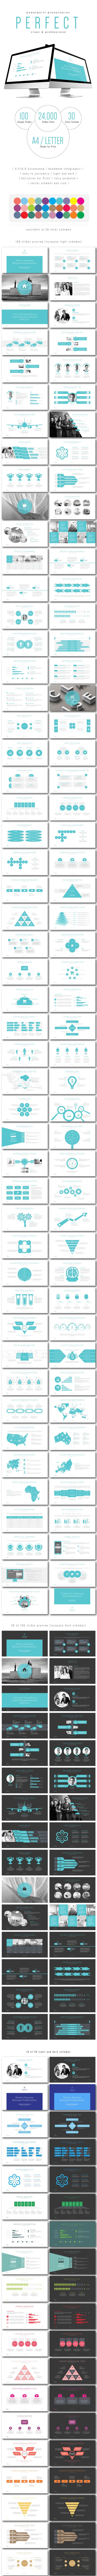 Perfect PowerPoint / Keynote Presentation Template on Behance